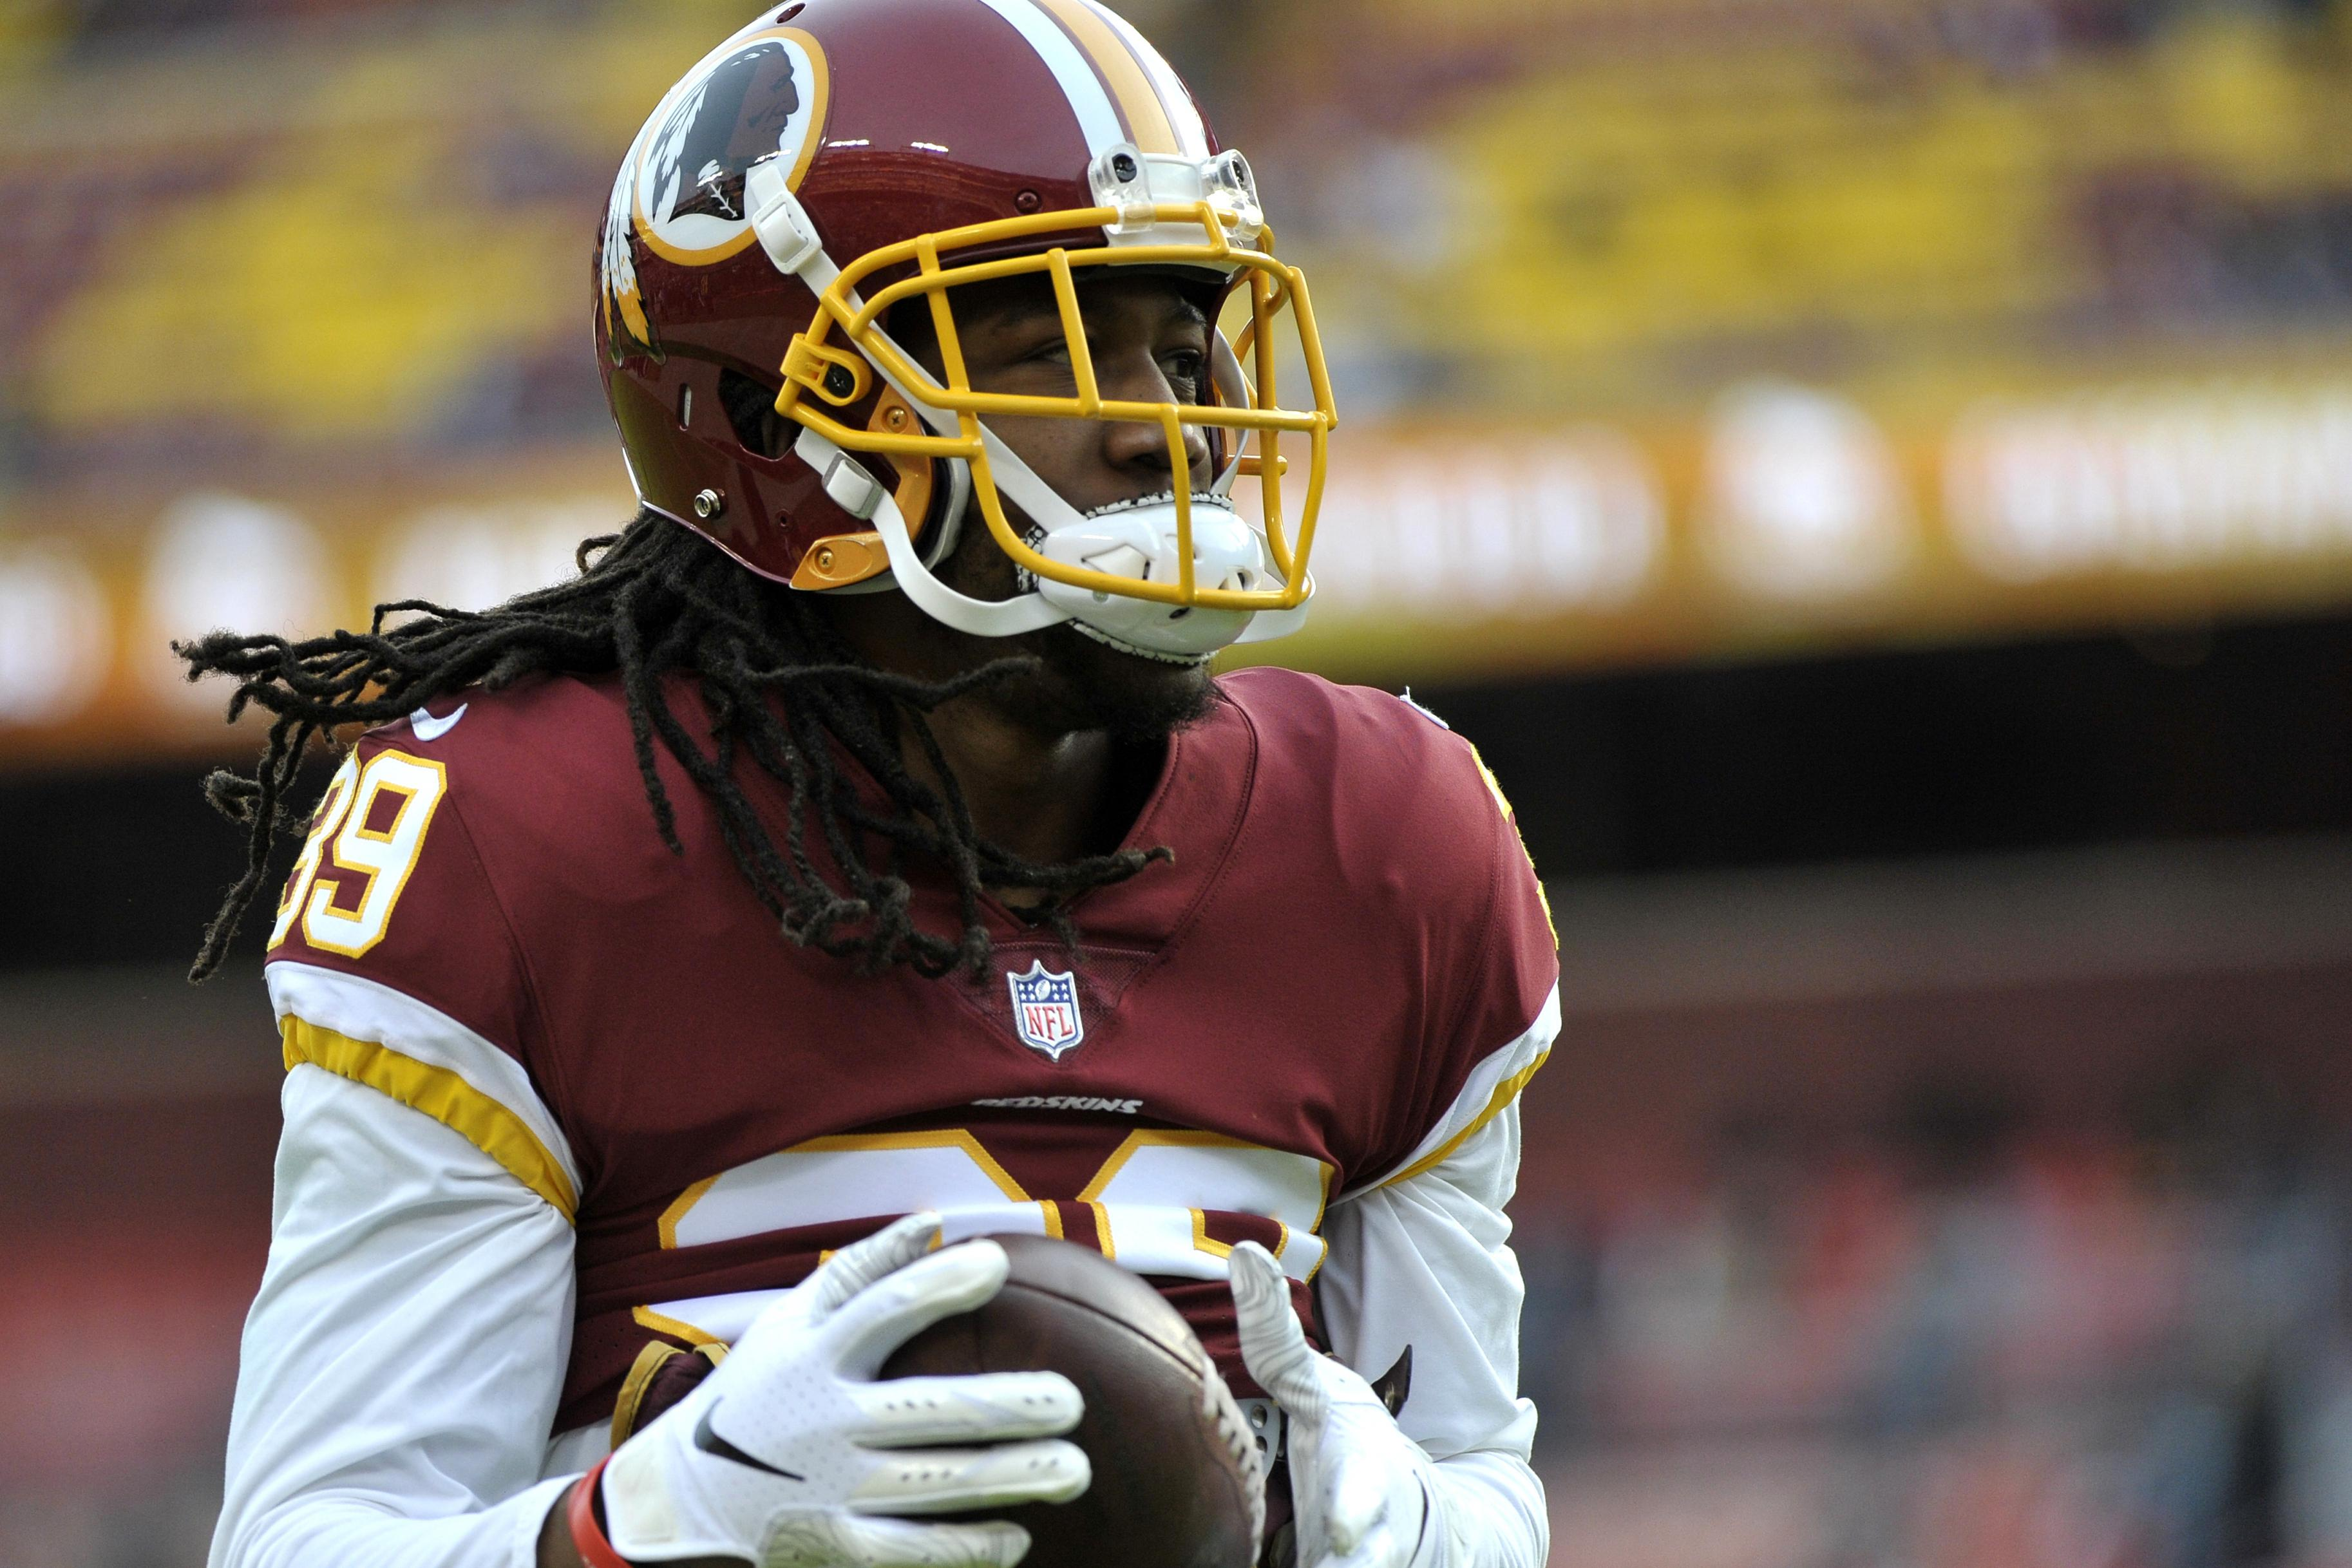 Redskins' Alexander sees specialist, out 2 weeks with injury